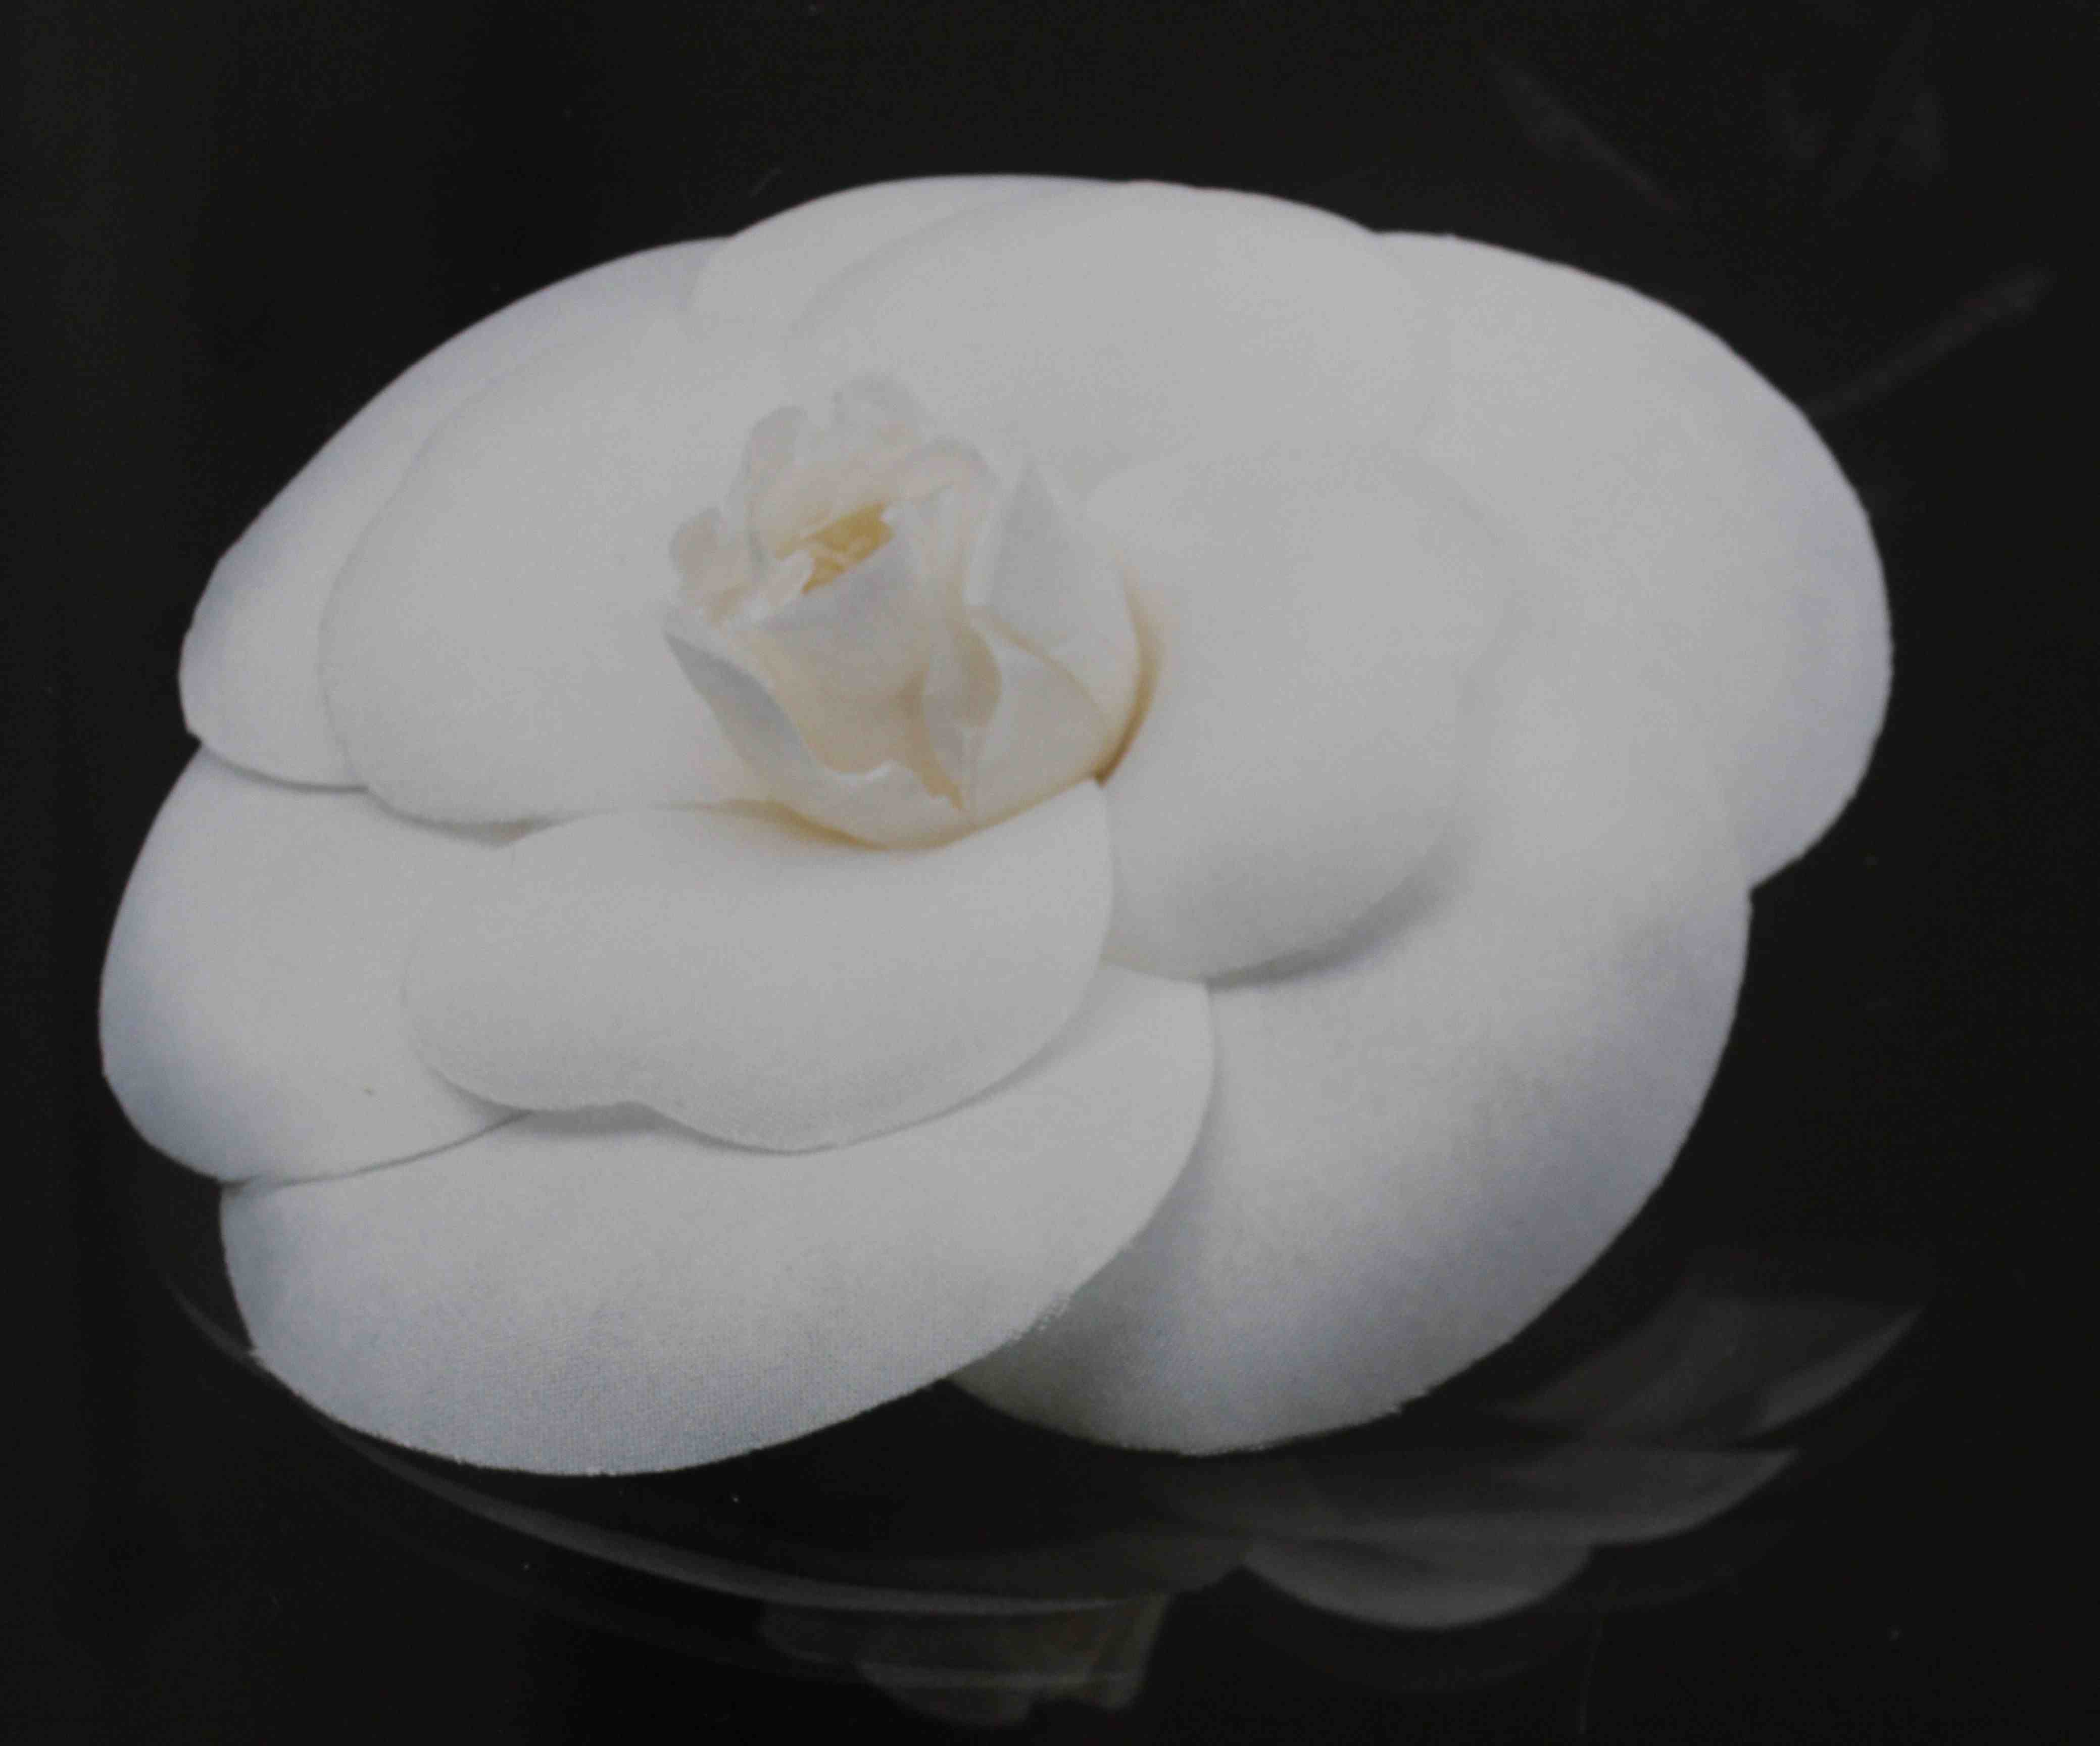 Inspired by: The Chanel Camellia – Fashionplate